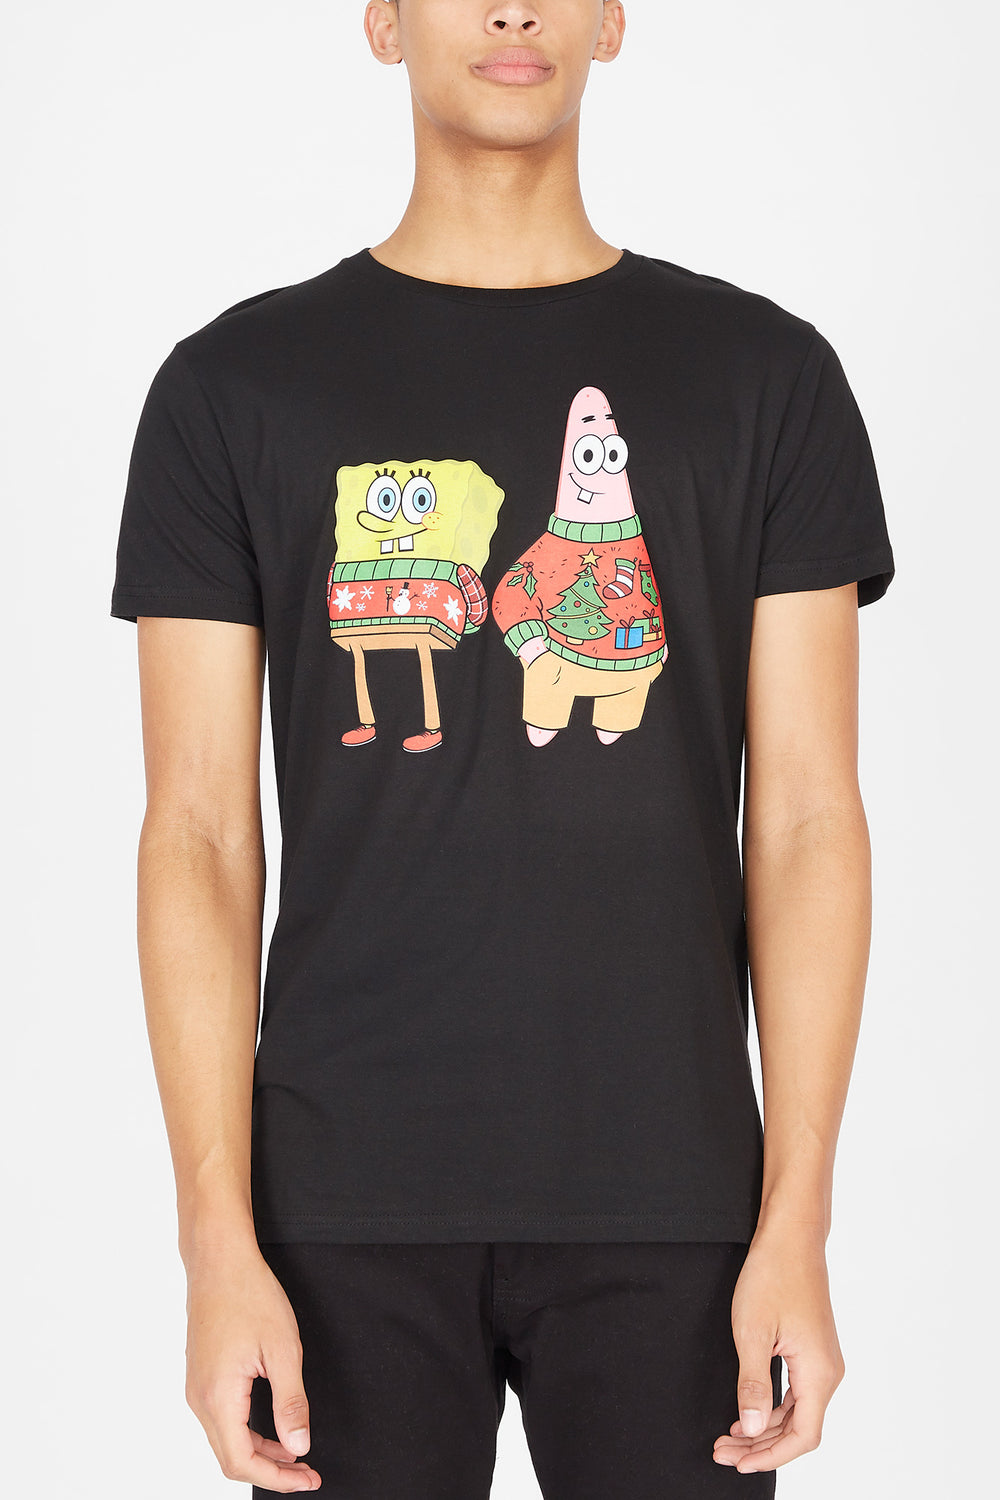 SpongeBob Squarepants Holiday T-Shirt Black